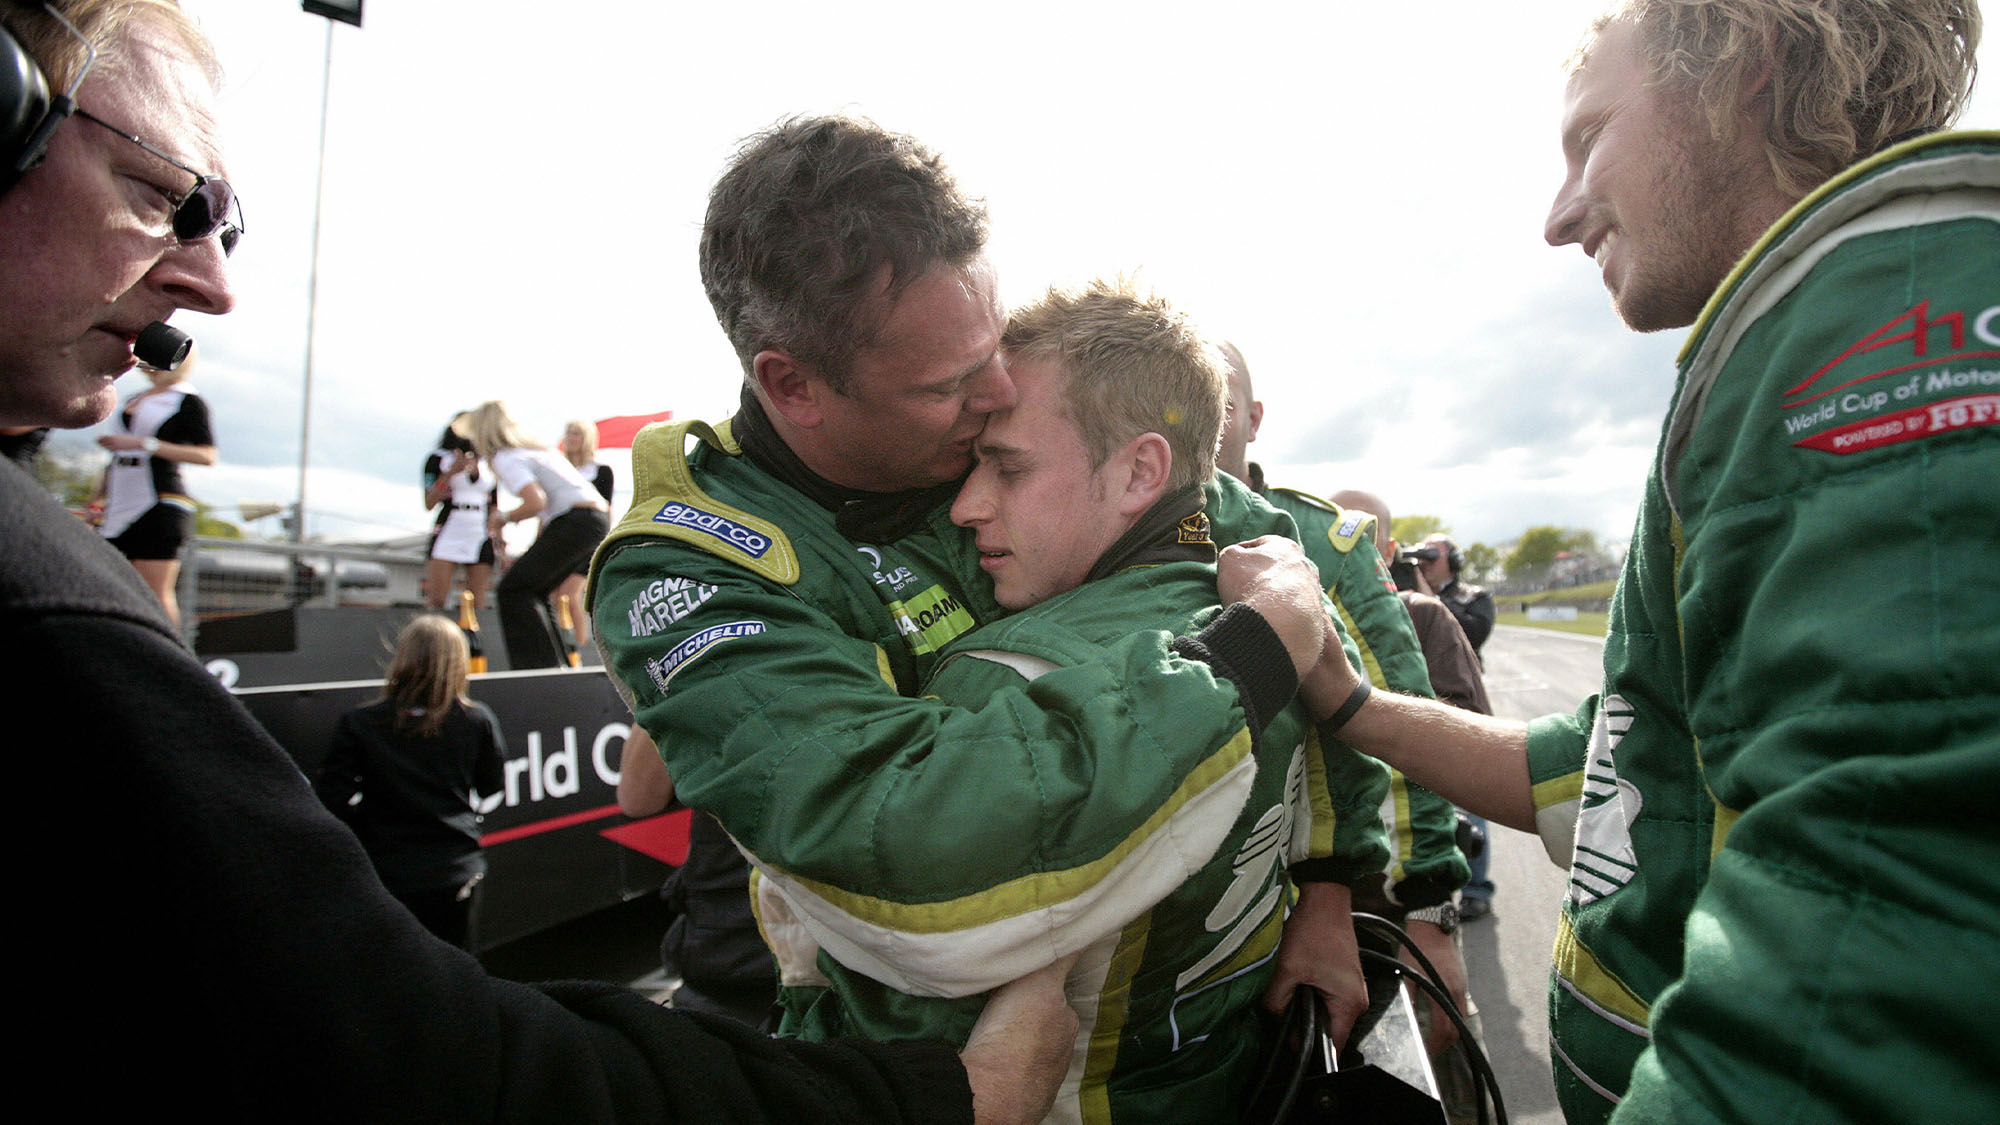 Ireland's A1GP racing driver Adam Carroll (2-R) celebrates with his chief mechanic after winning the A1GP world cup at Brands Hatch circuit on May 3, 2009. AFP PHOTO/Shaun Curry (Photo credit should read SHAUN CURRY/AFP via Getty Images)